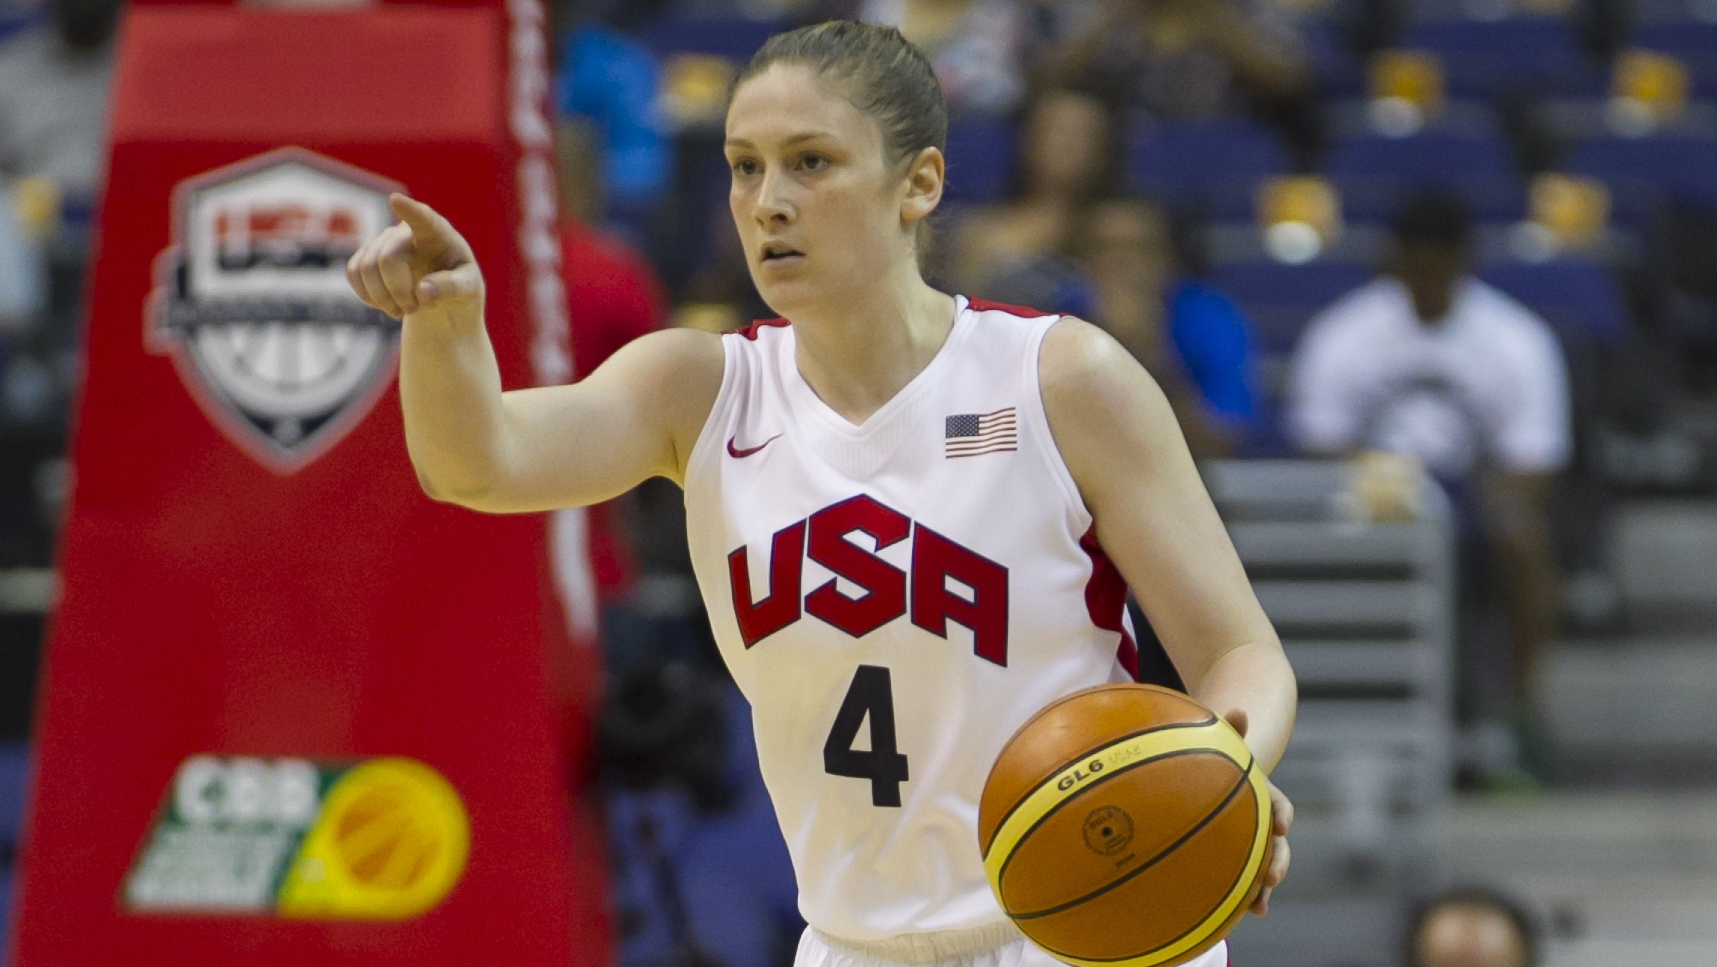 Brazil no match for USA in exhibition, suffers 99-67 rout